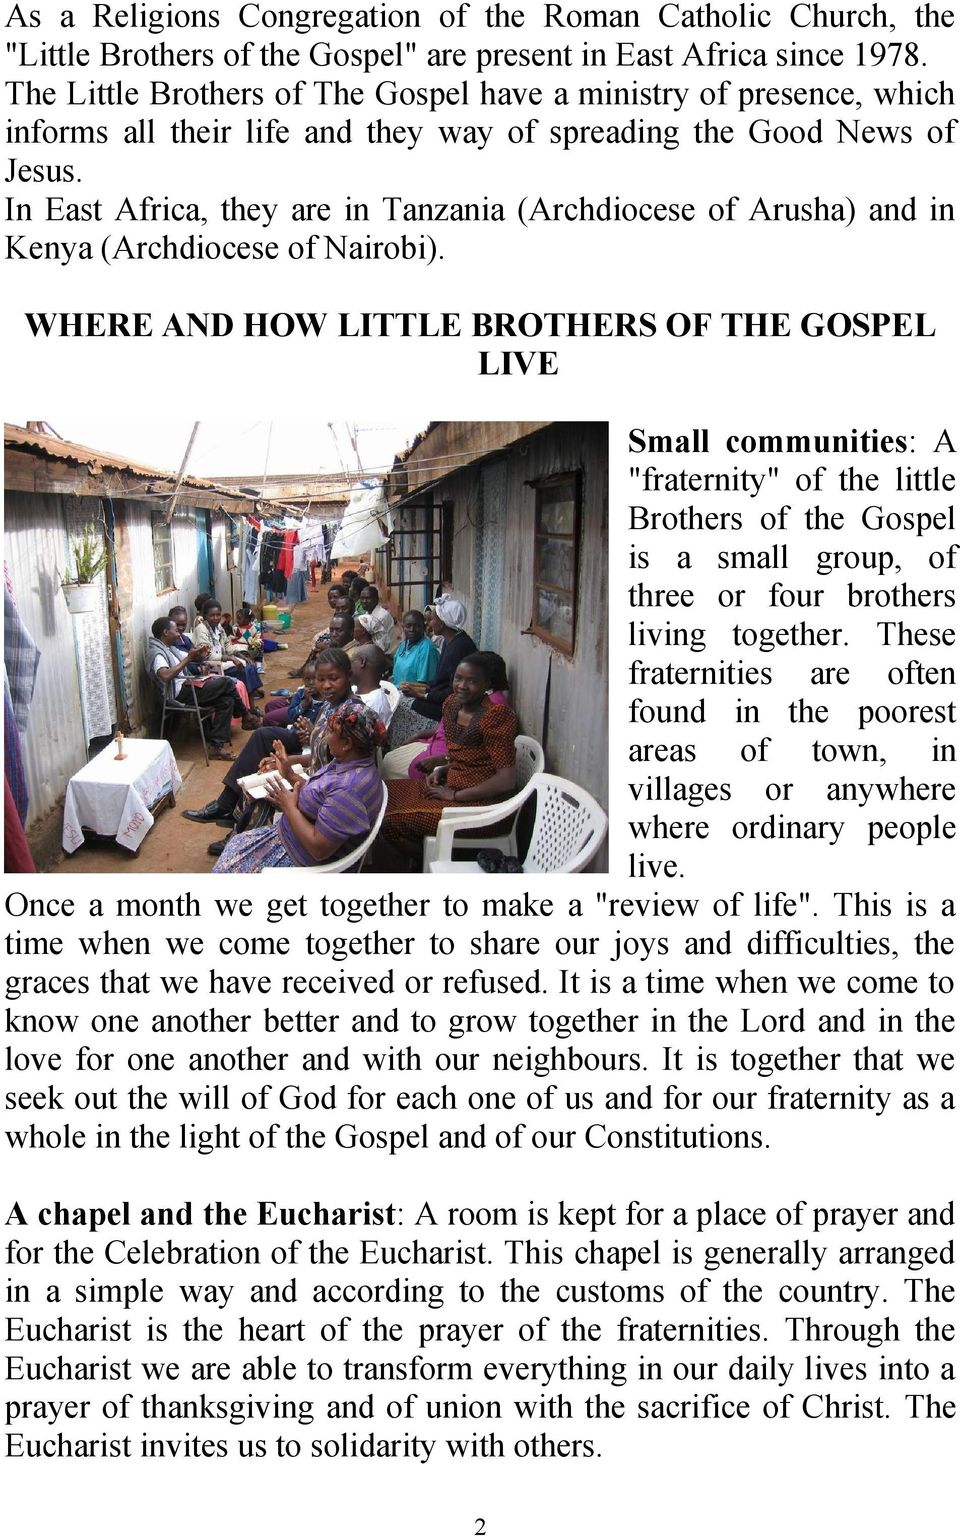 In East Africa, they are in Tanzania (Archdiocese of Arusha) and in Kenya (Archdiocese of Nairobi).